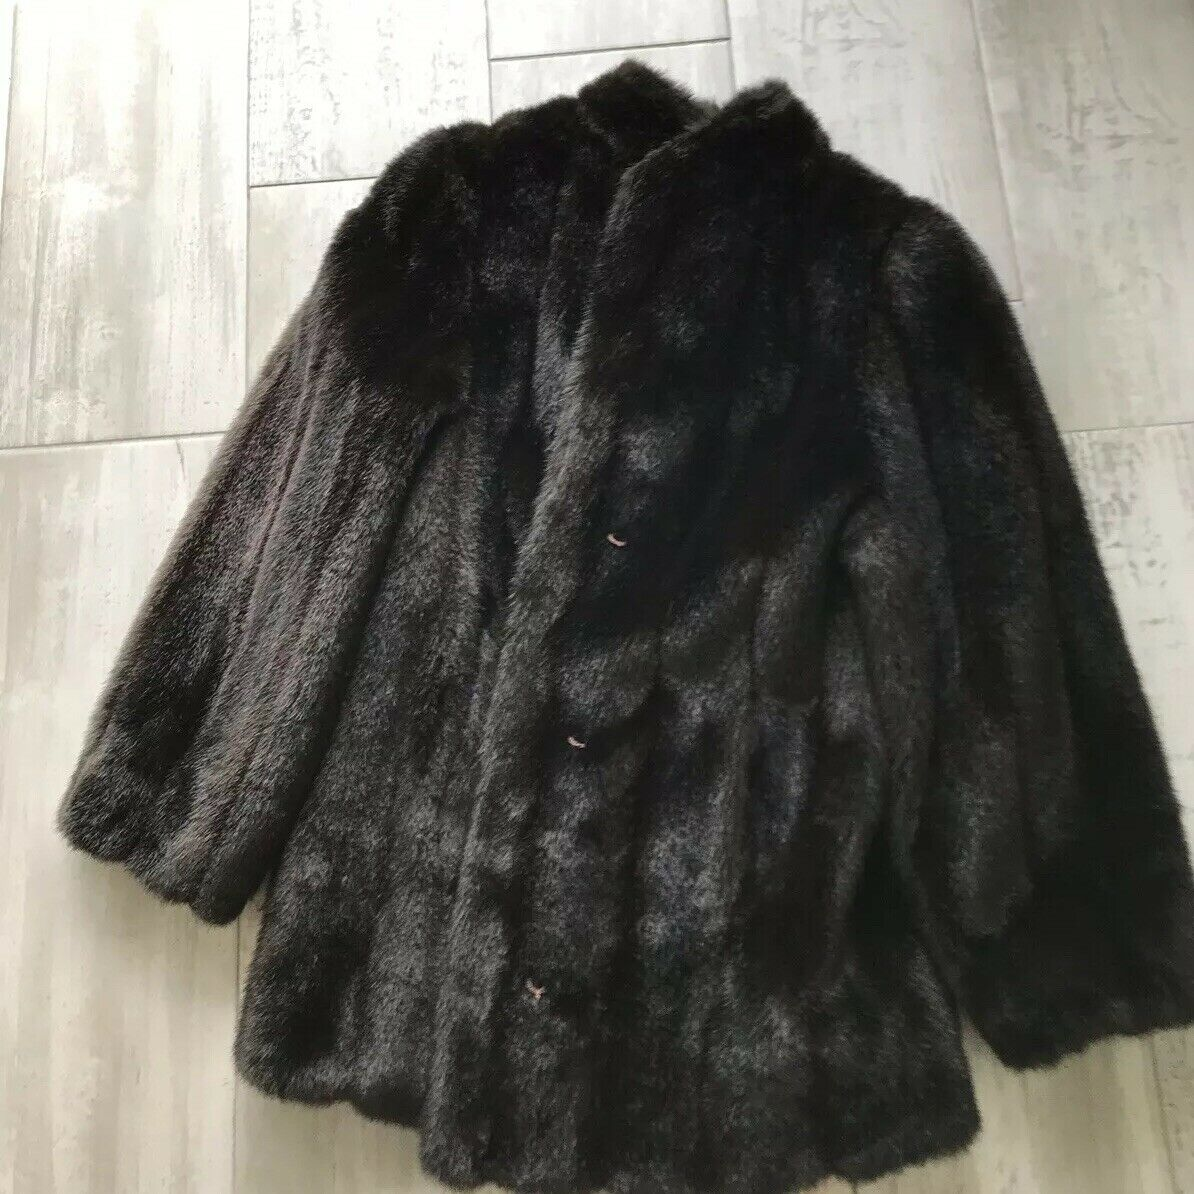 Synthetic Fur Coat Russel Taylor Signature Collection Limited Edition 4999 2657